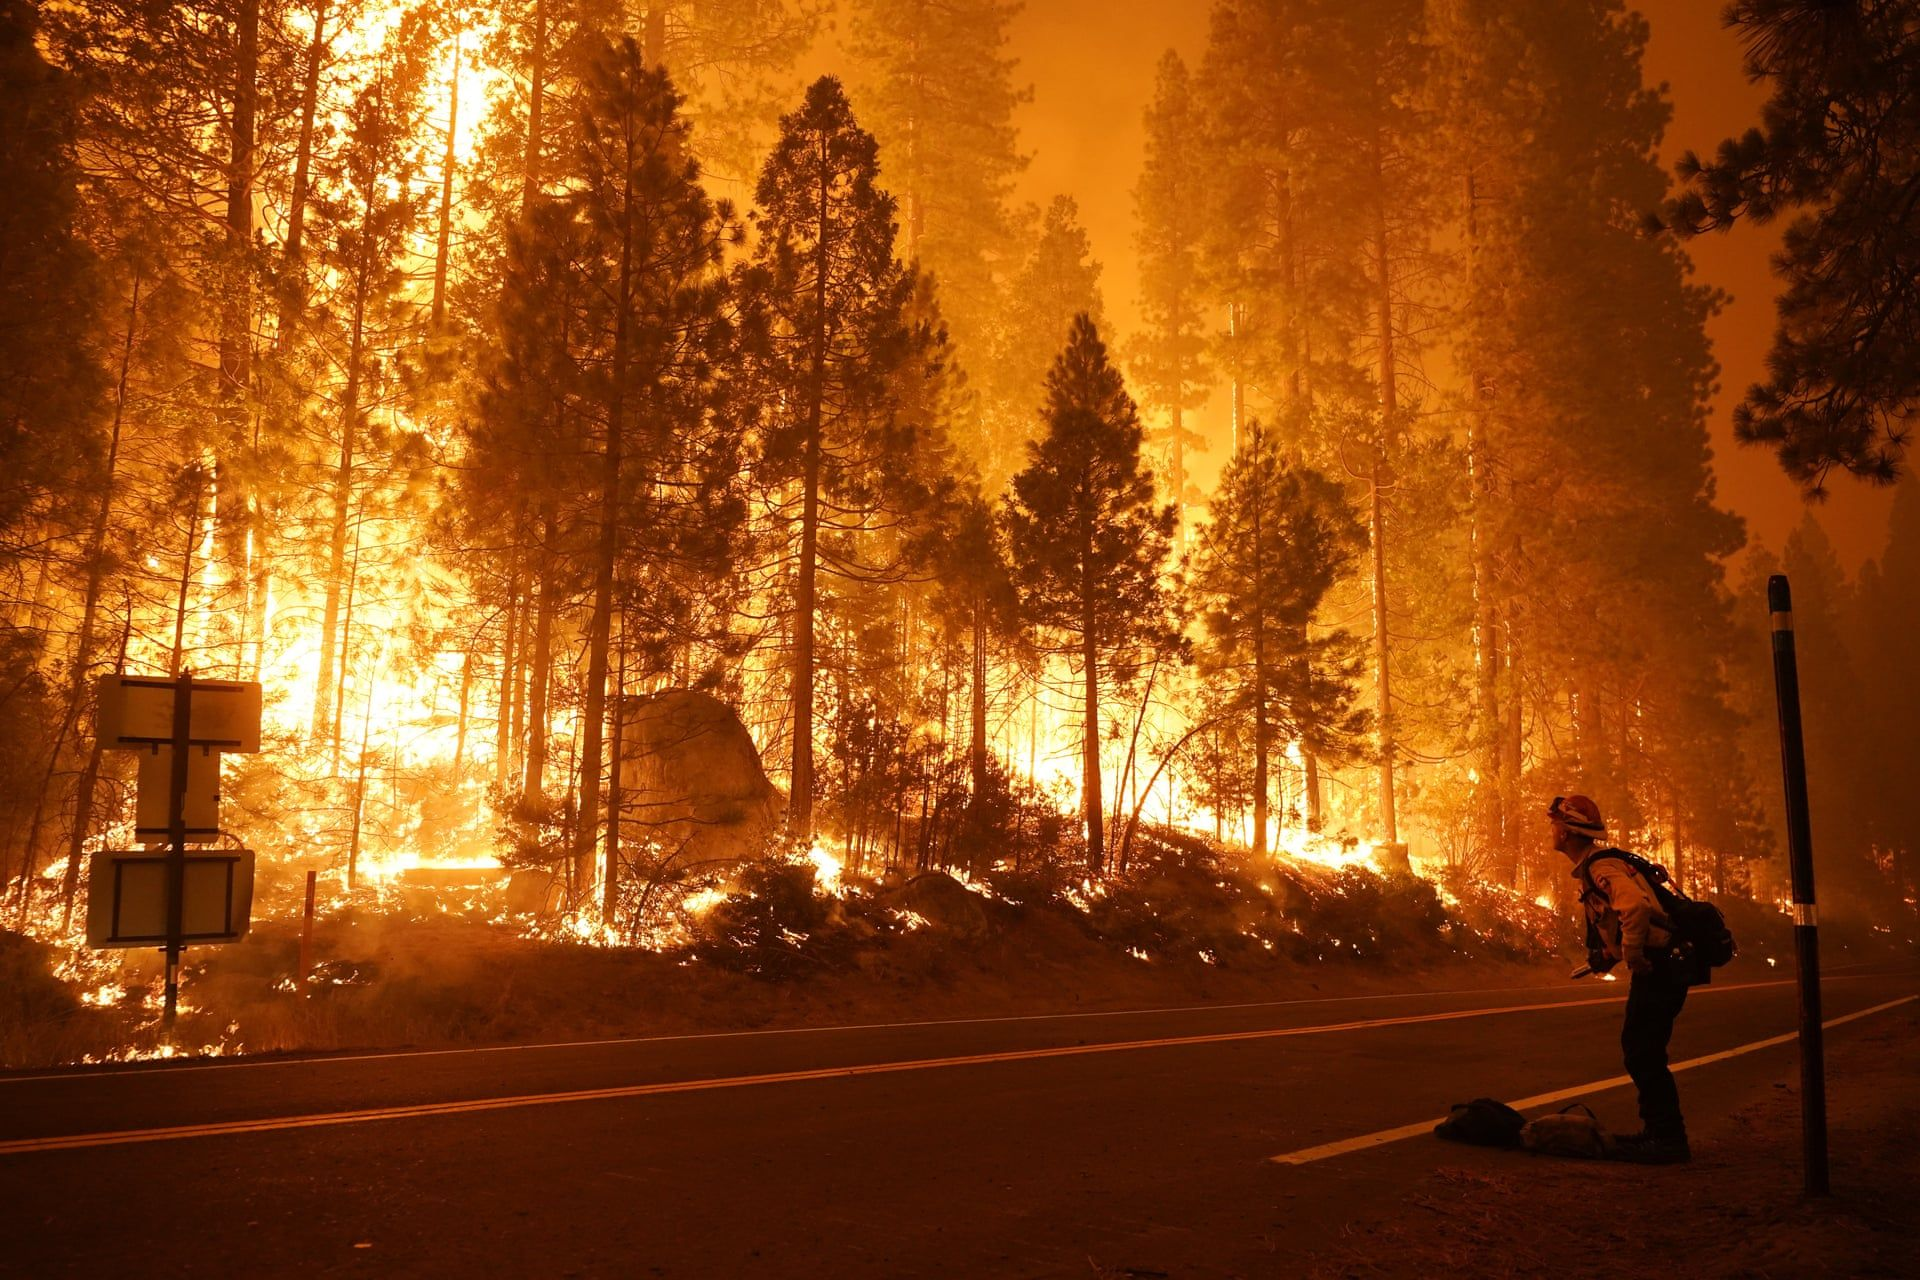 California Wildfires In Pictures In 2020 California Wildfires San Bernardino National Forest Pictures